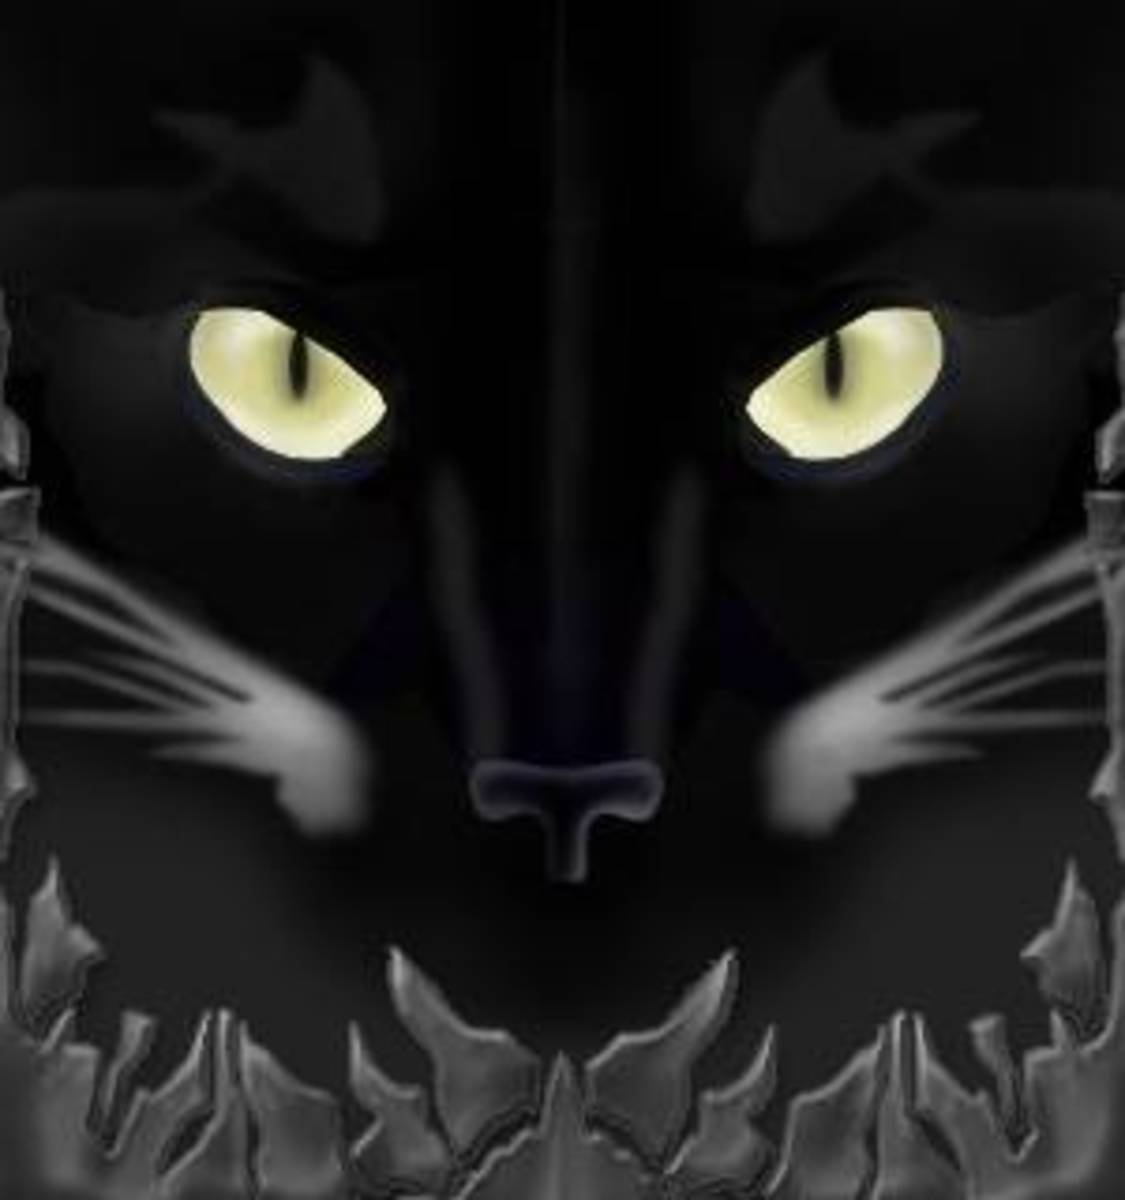 The black cat features in Russian Superstitions and old wives tales as it does in other countries throughout the world